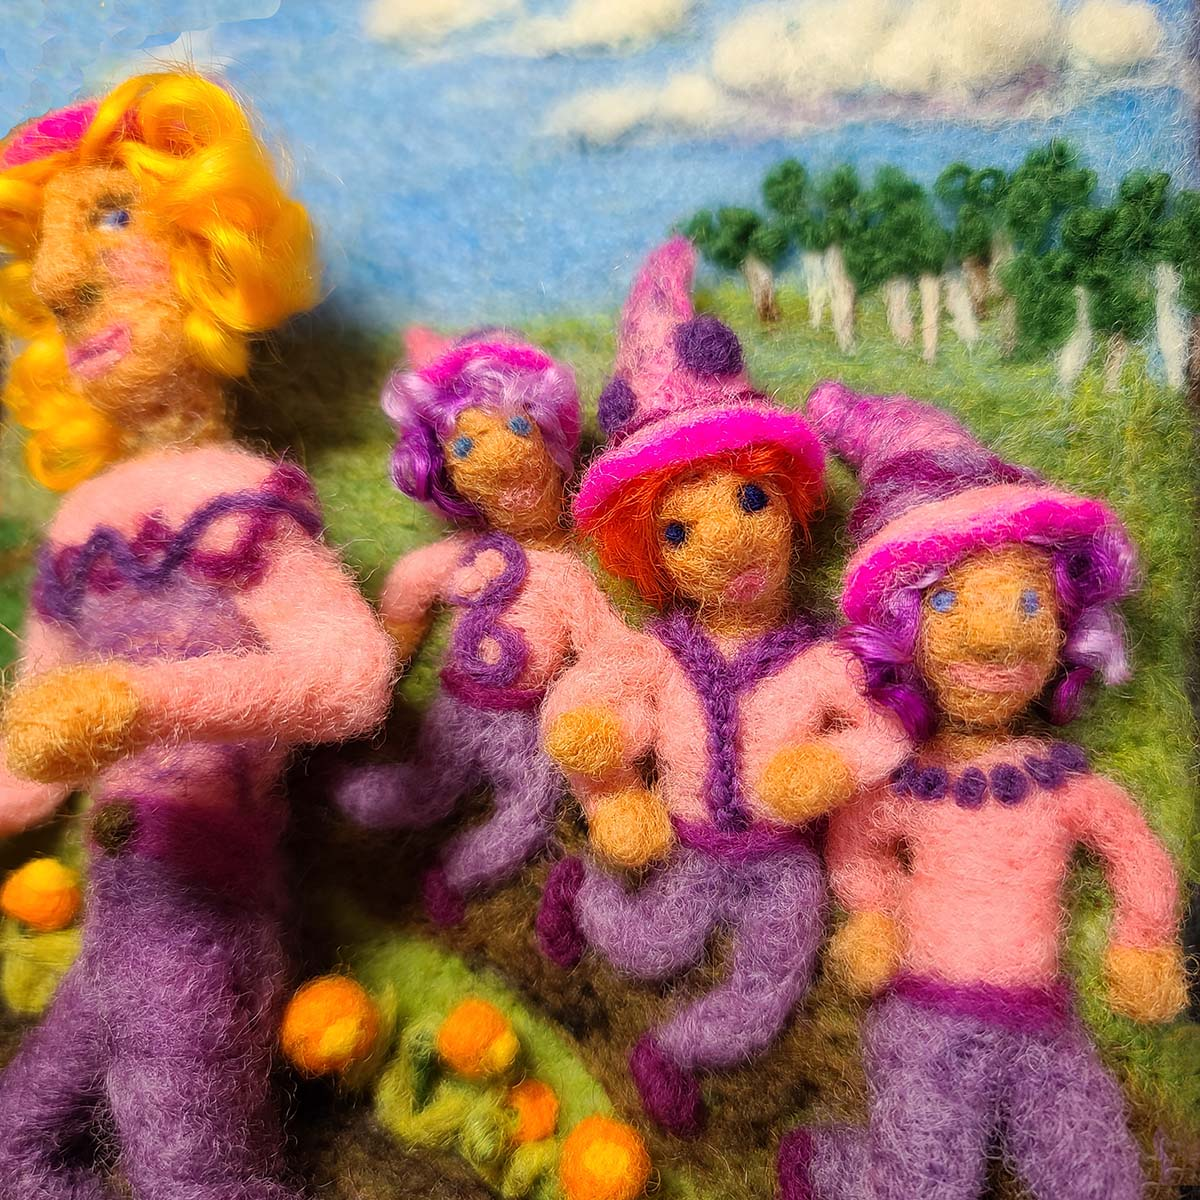 Needle Felted Elves and fairies by Hillary Dow